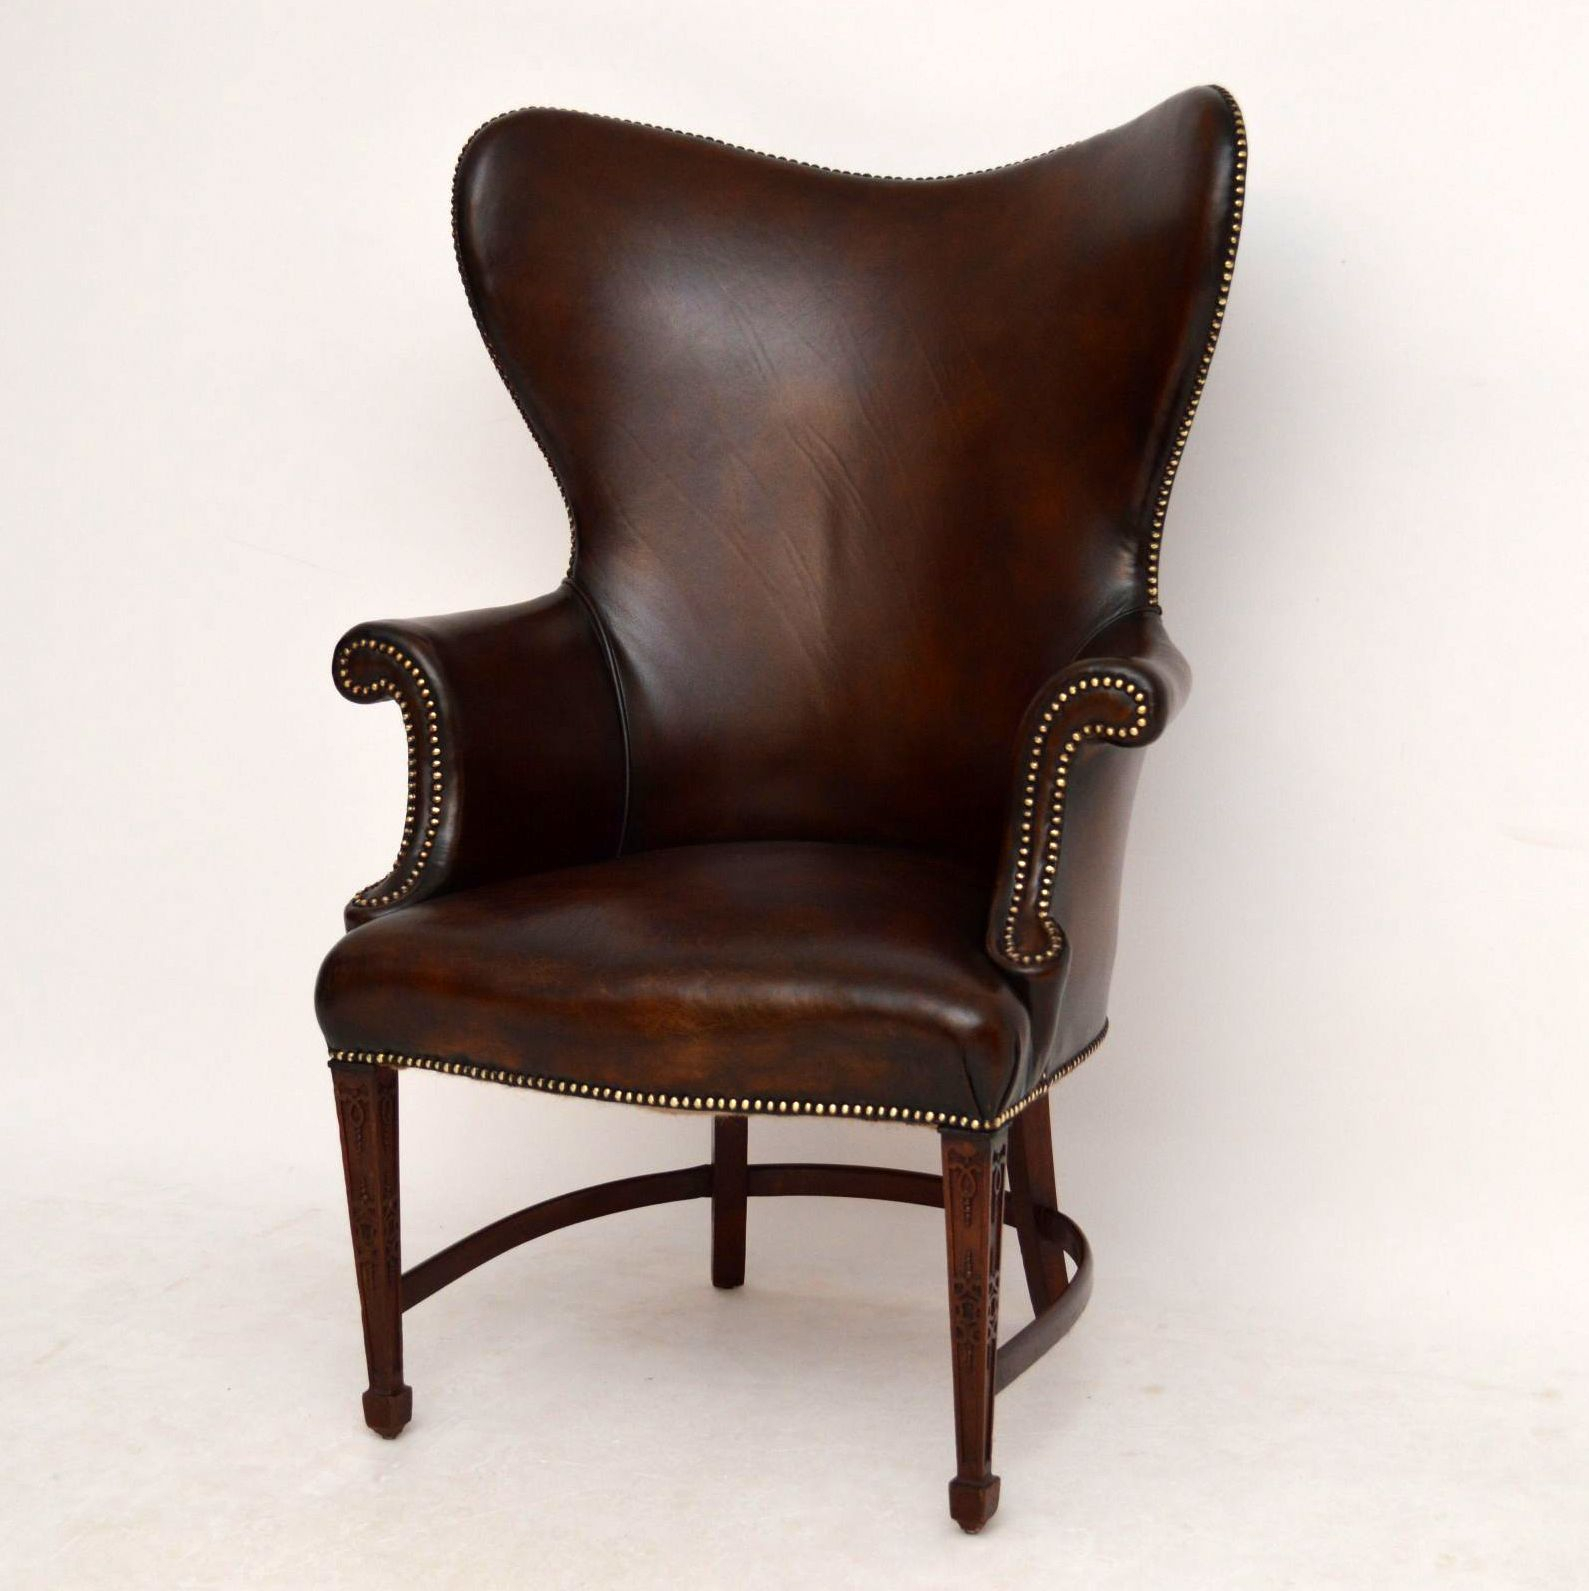 Antique Leather & Mahogany Wing Armchair   Church Street With Hofstetter Armchairs (View 11 of 15)